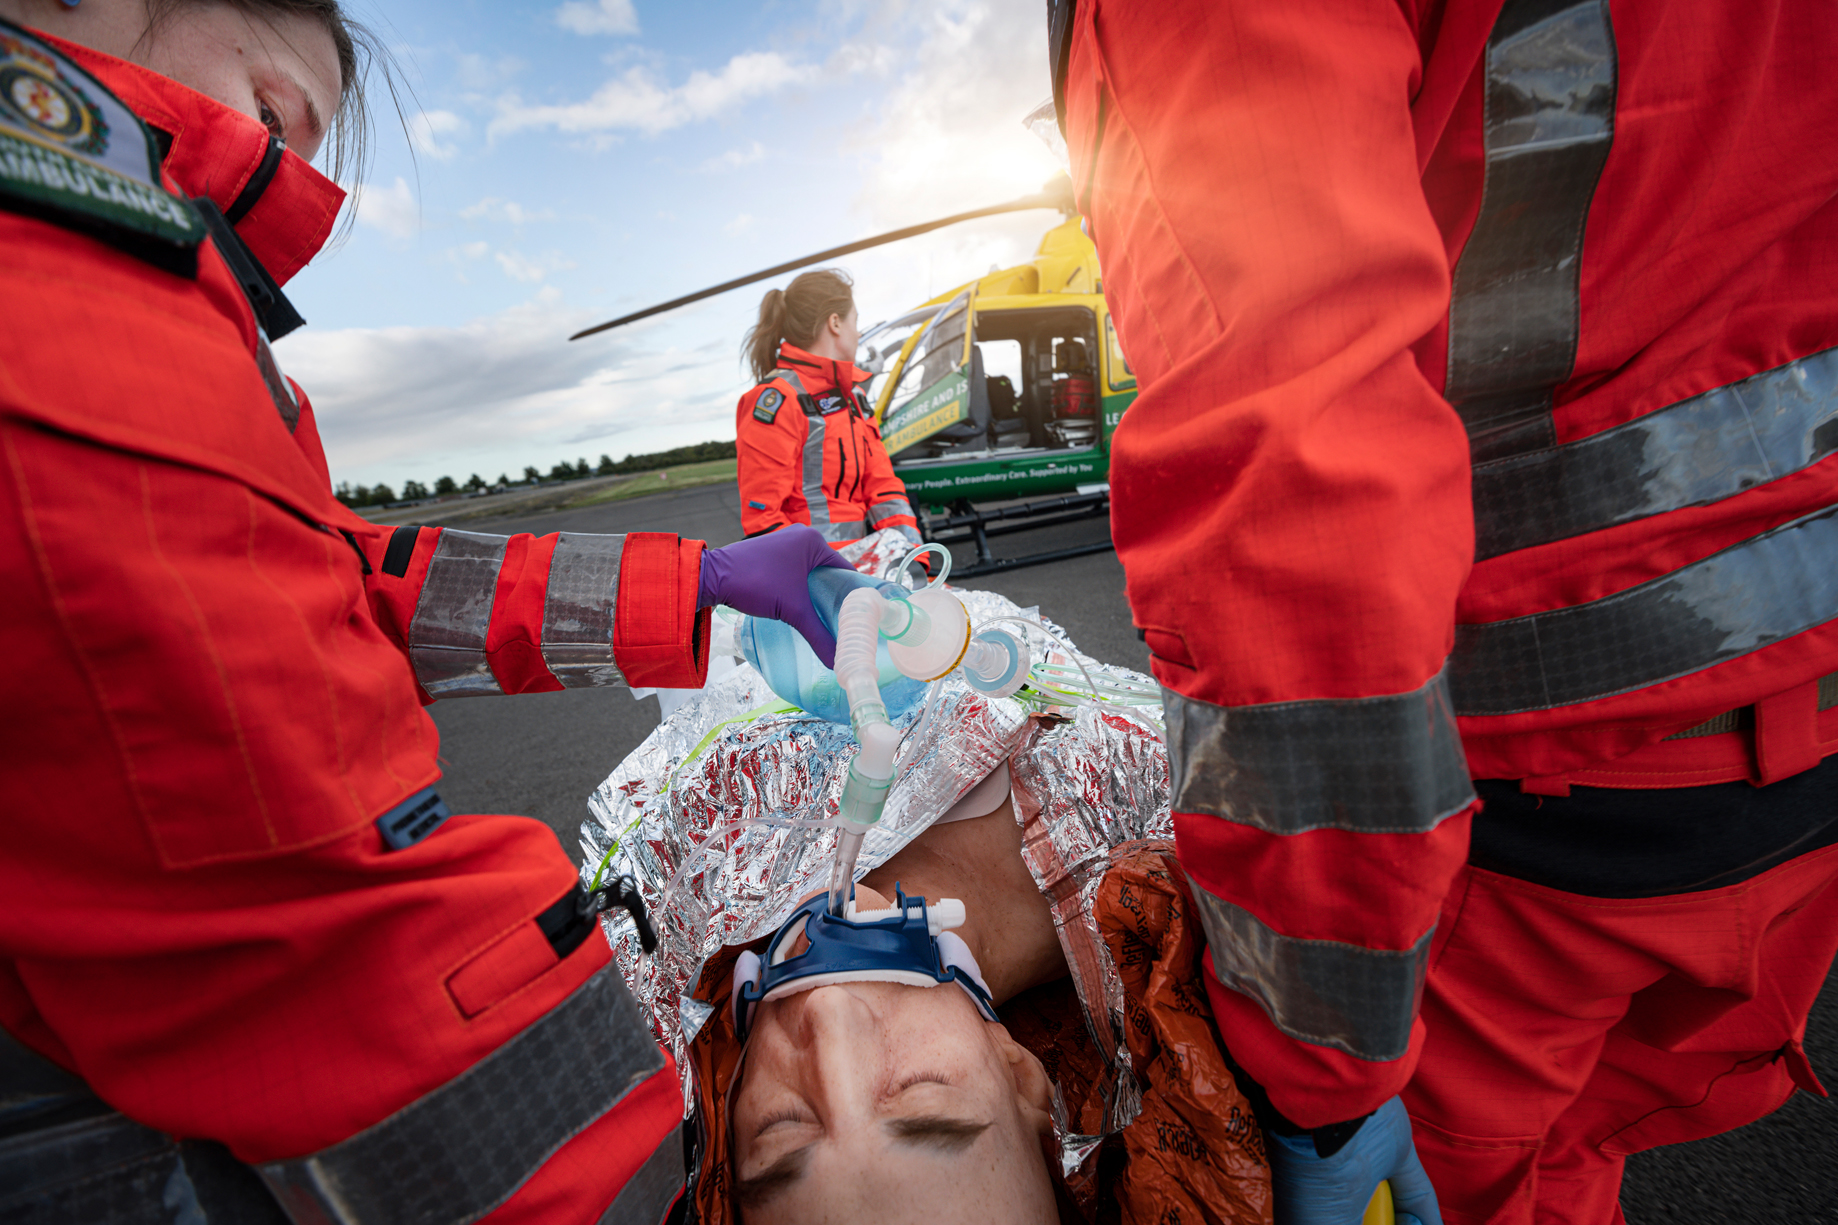 Three crew members are participating in a training simulation with a life like manikin. The manikin is on already packed onto a stretcher and is wearing an oxygen mask. The helicopter is in the background.